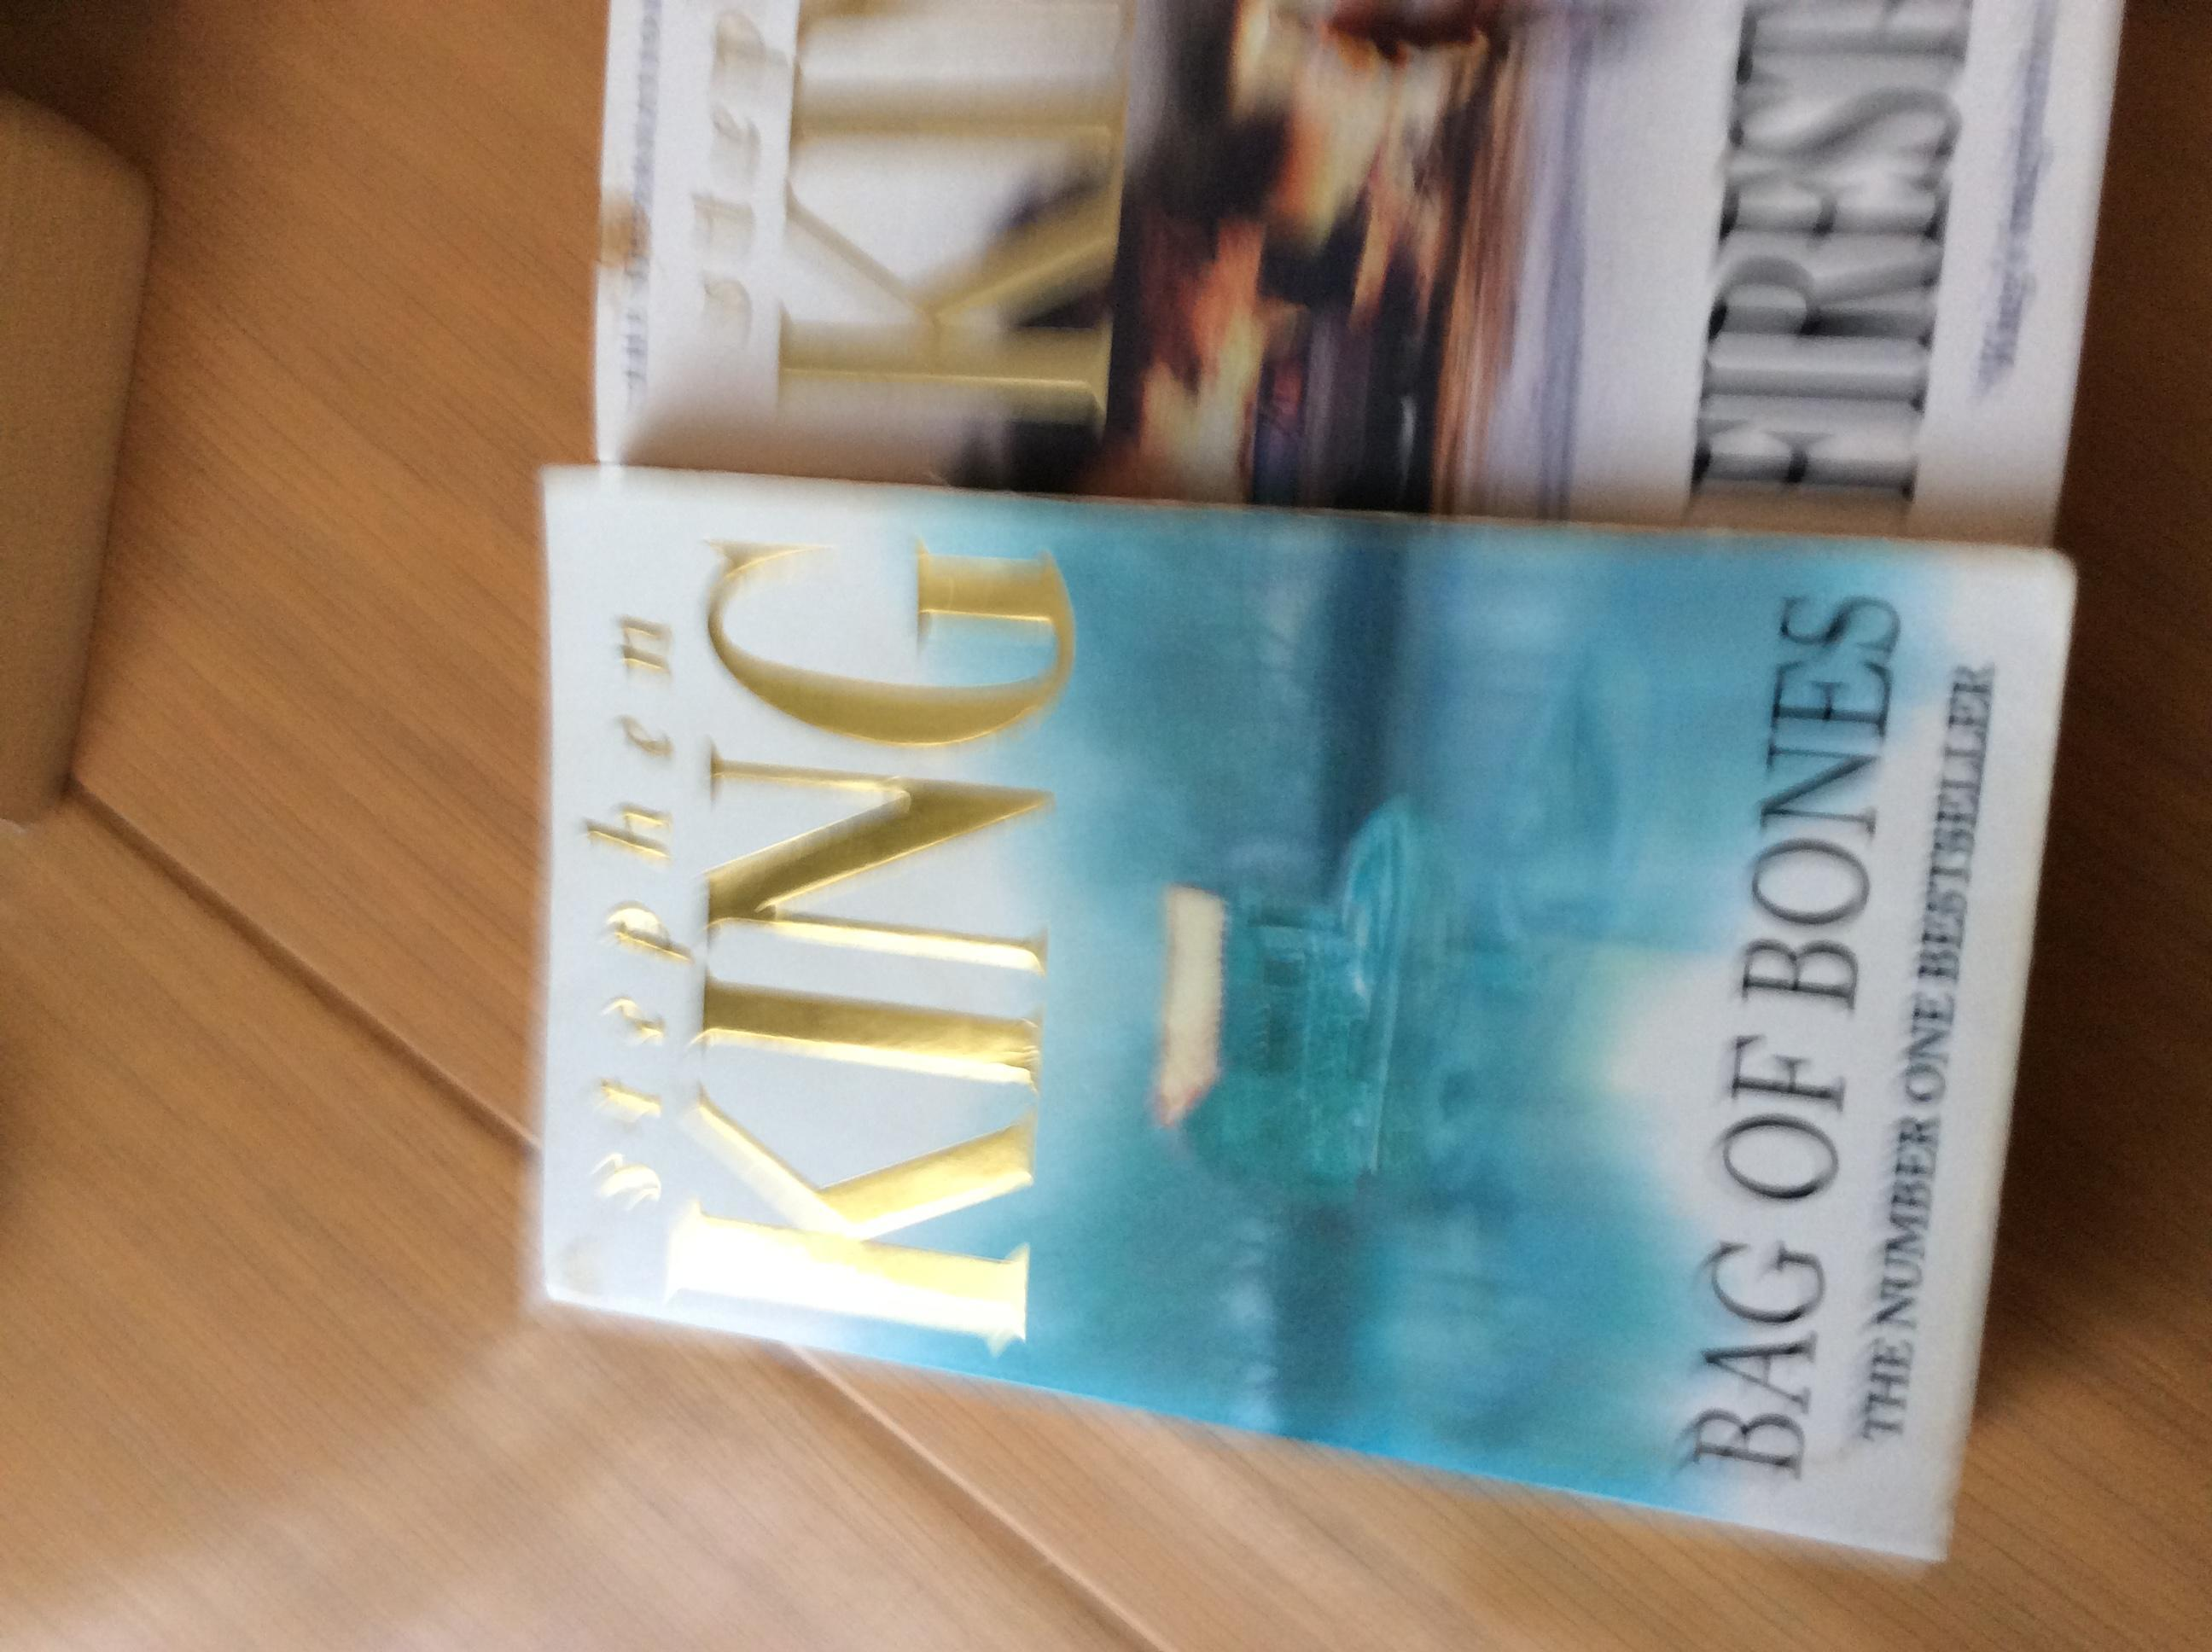 Two Stephen king books